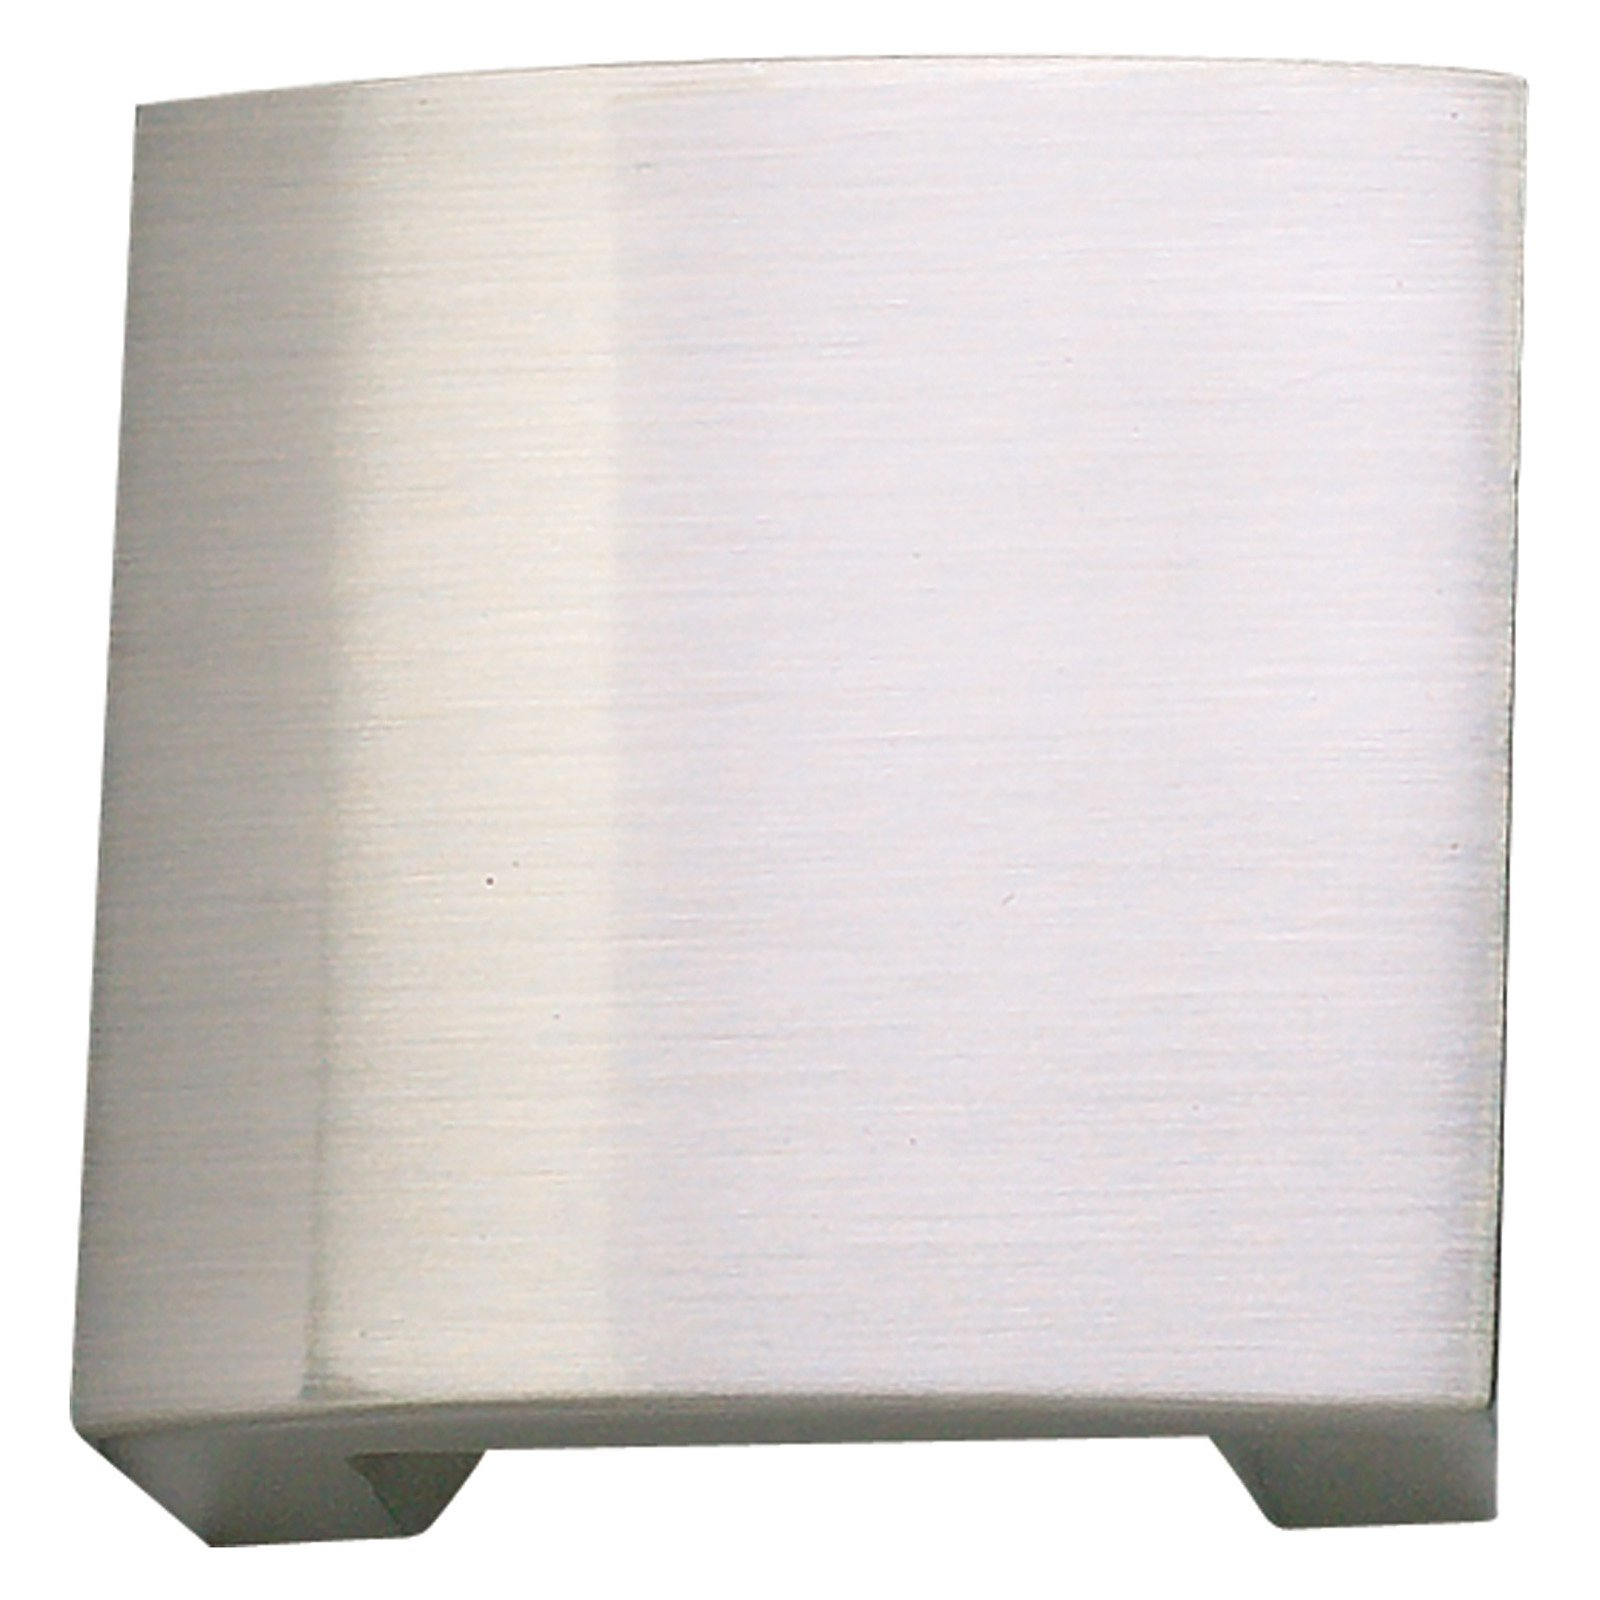 Centinel Collection 1-3/4 in. Brushed Nickel Cabinet Knob